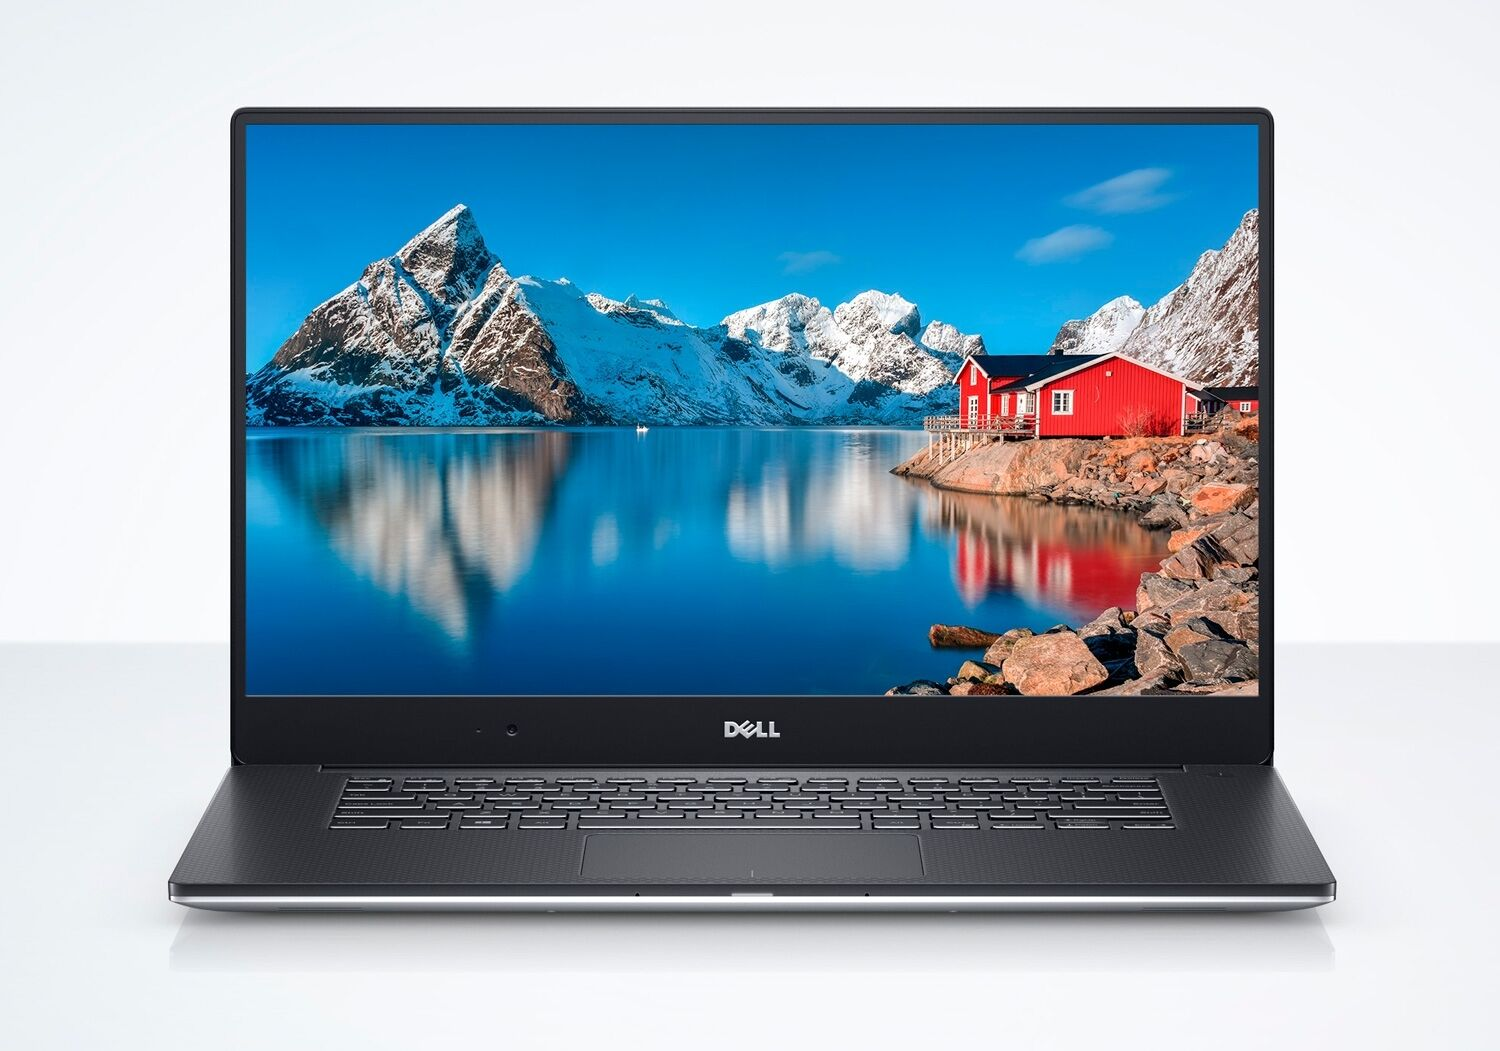 Dell Precision 15 M5520 i5-7440HQ up to 3.80GHz 16GB 256GB PCIe SSD FHD IPS W10